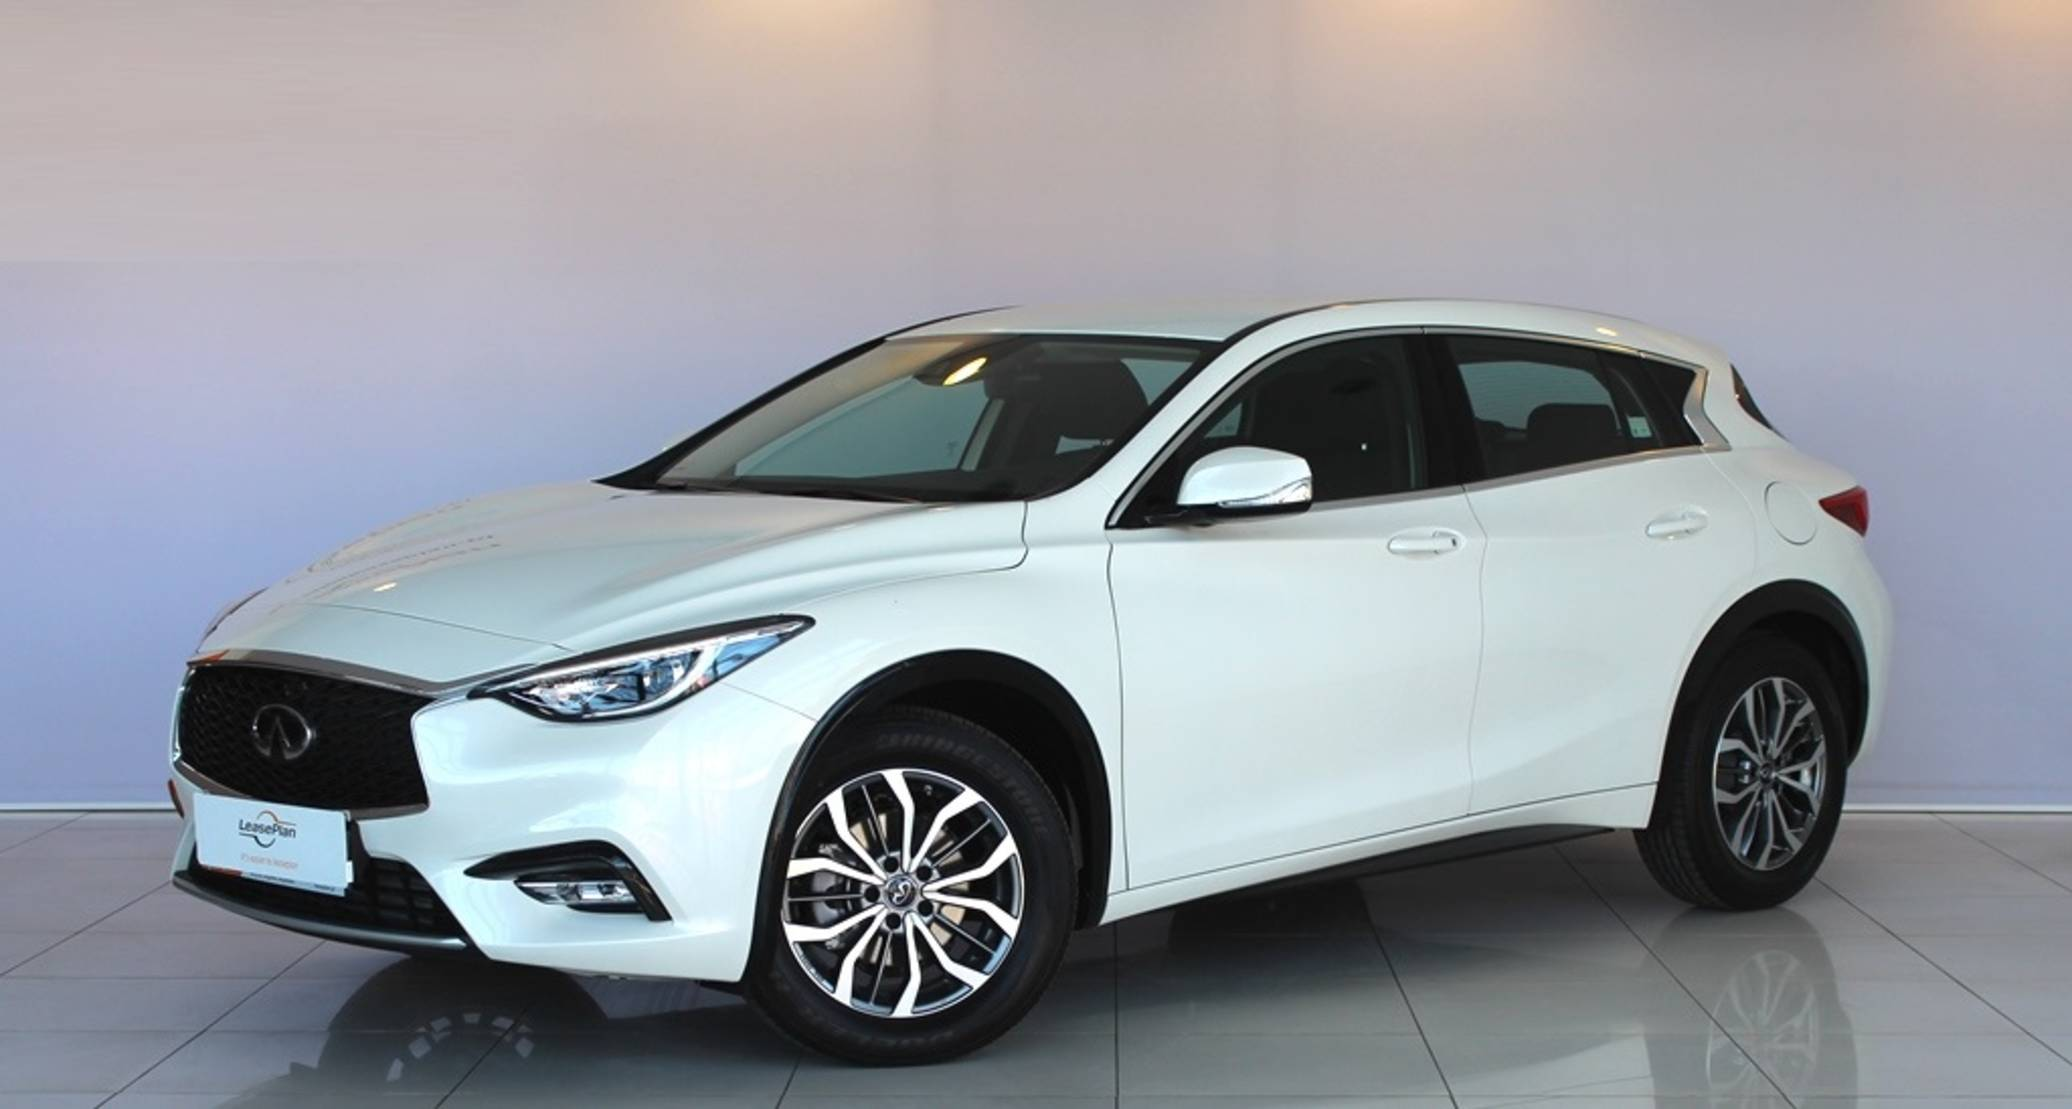 Infiniti Q30 1.5d Business 7dct detail1